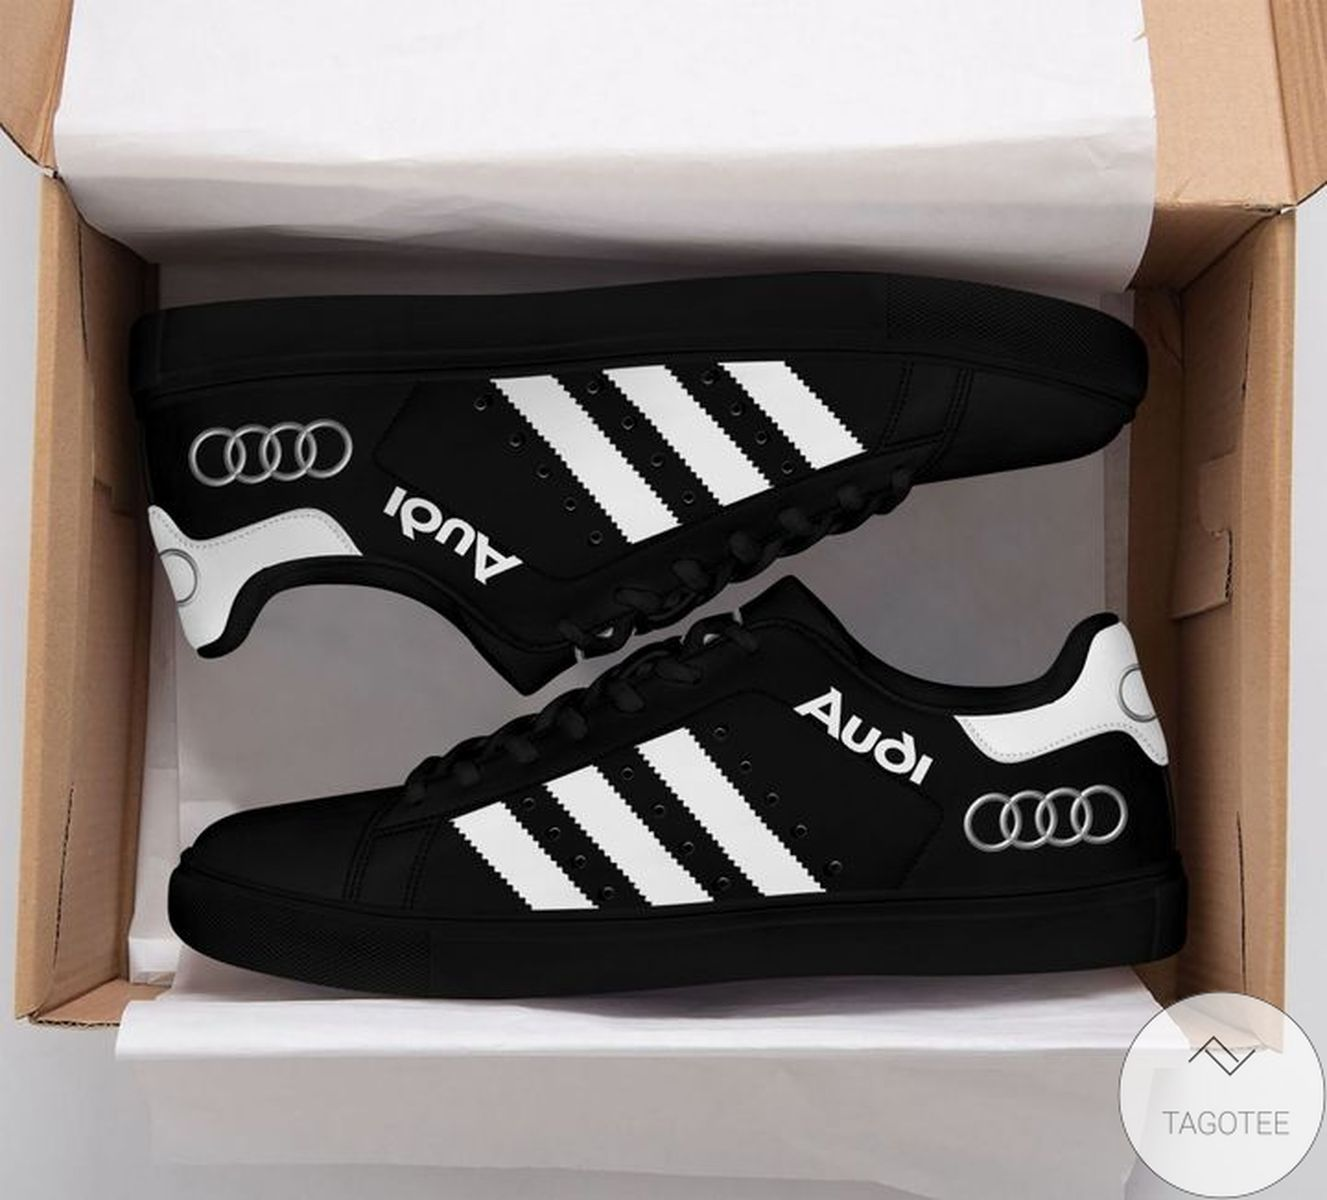 Official Audi Black Stan Smith Shoes